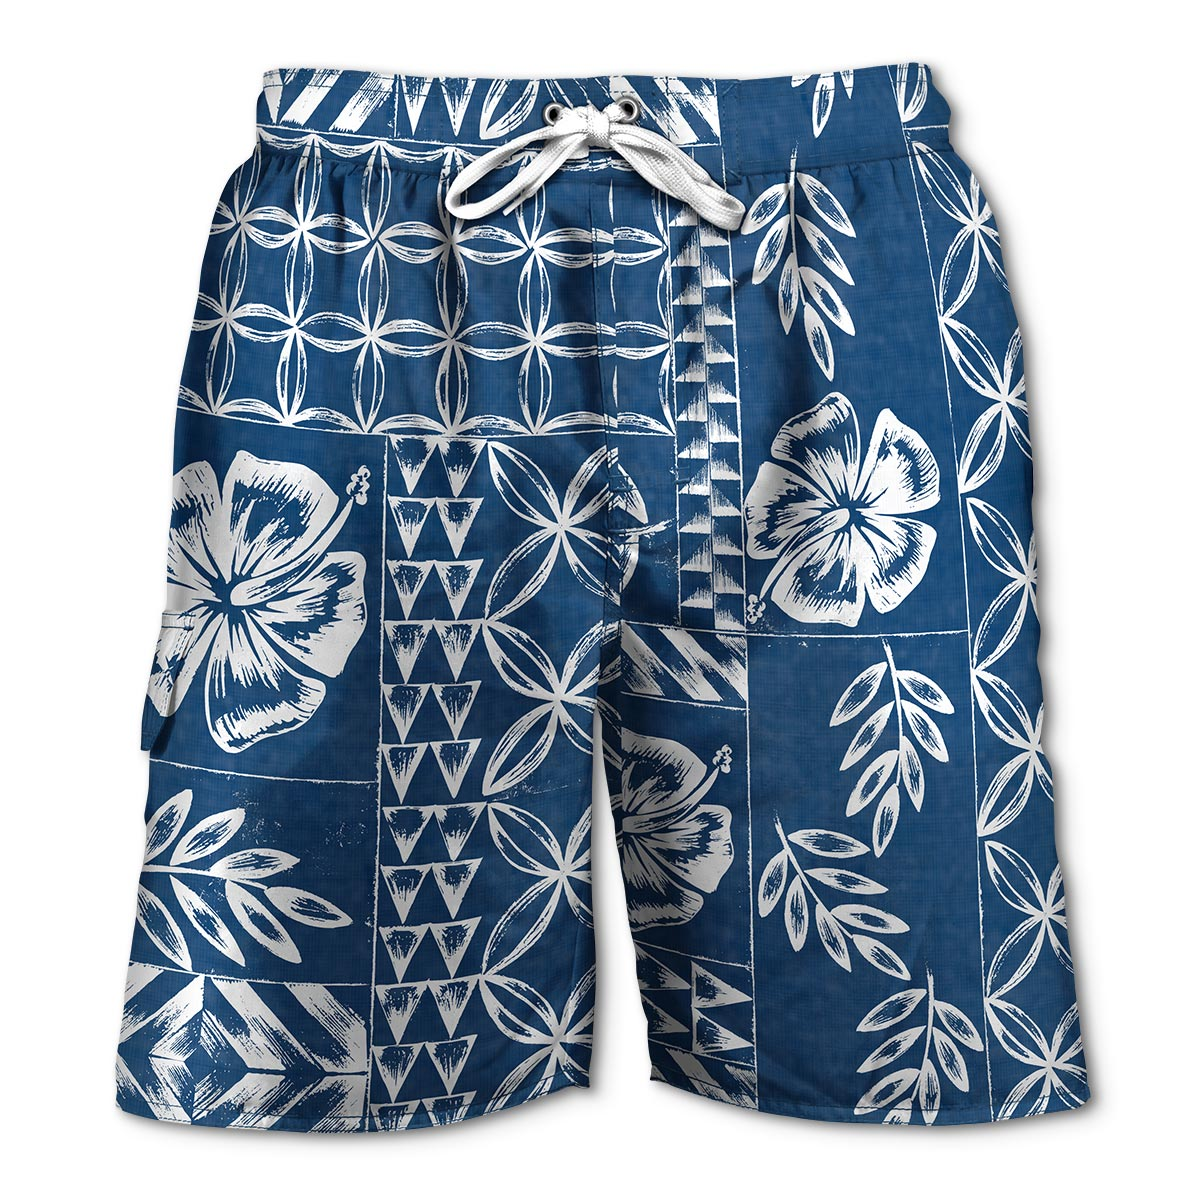 Newport Blue - Swim Shorts | Tapa - Blue